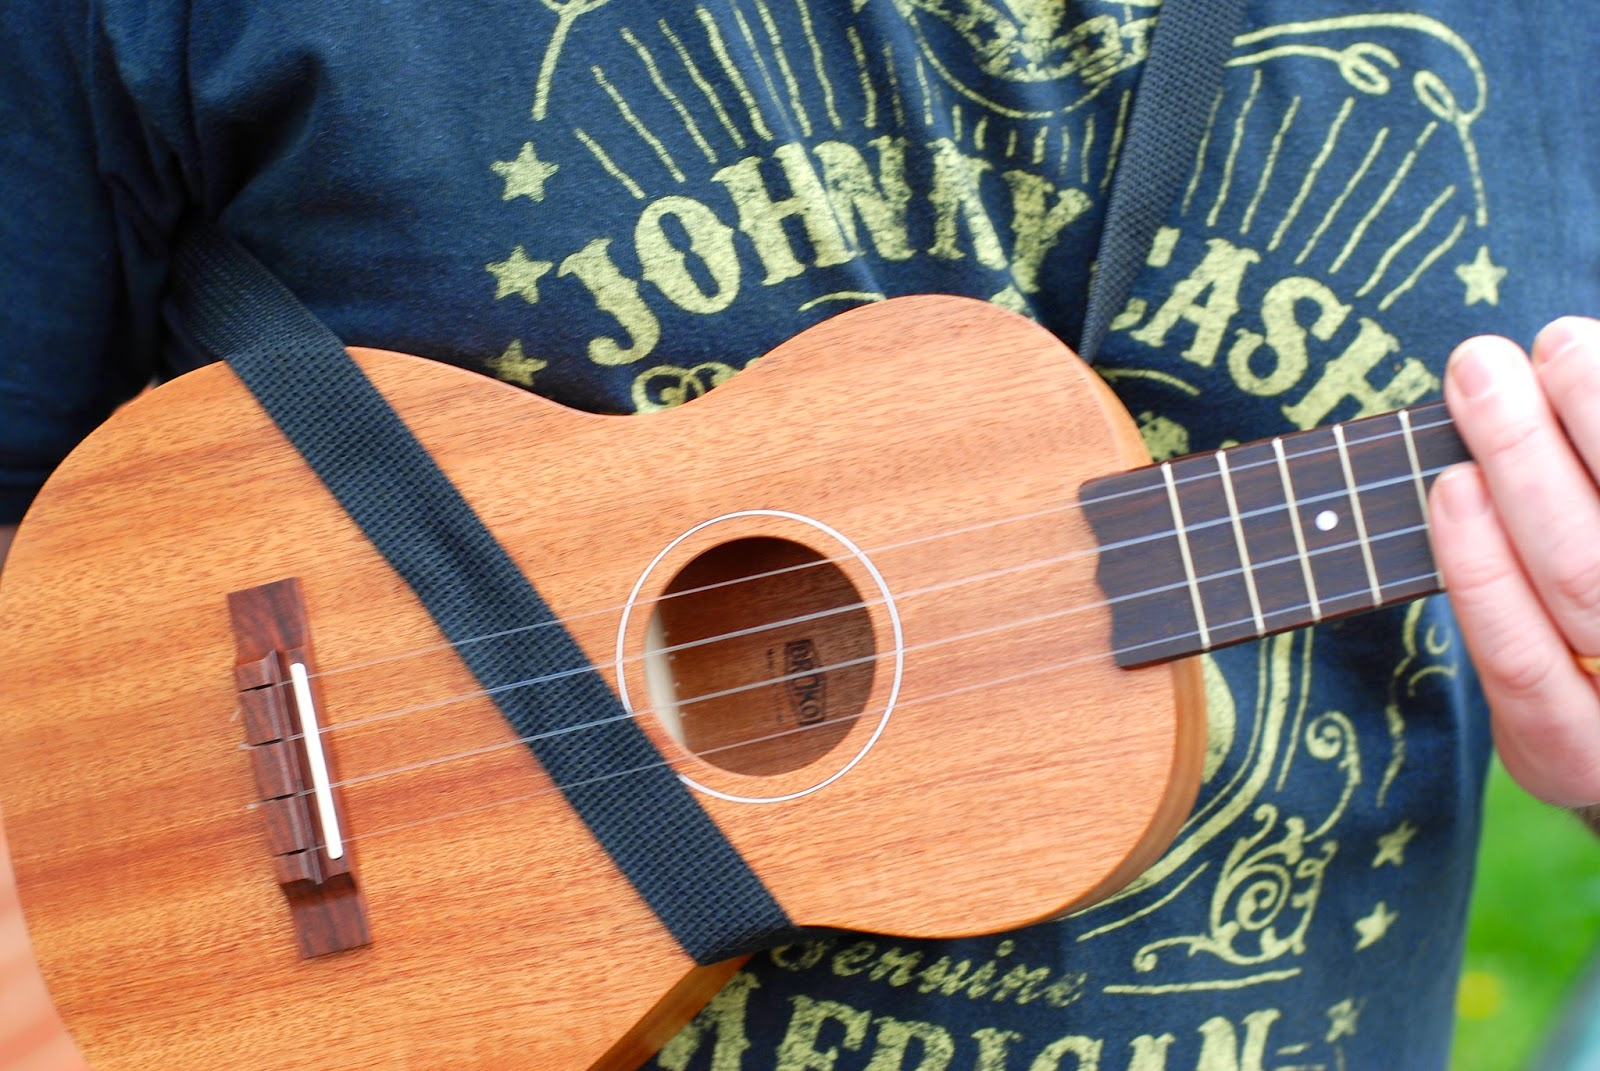 Mobius Ukulele Strap in use